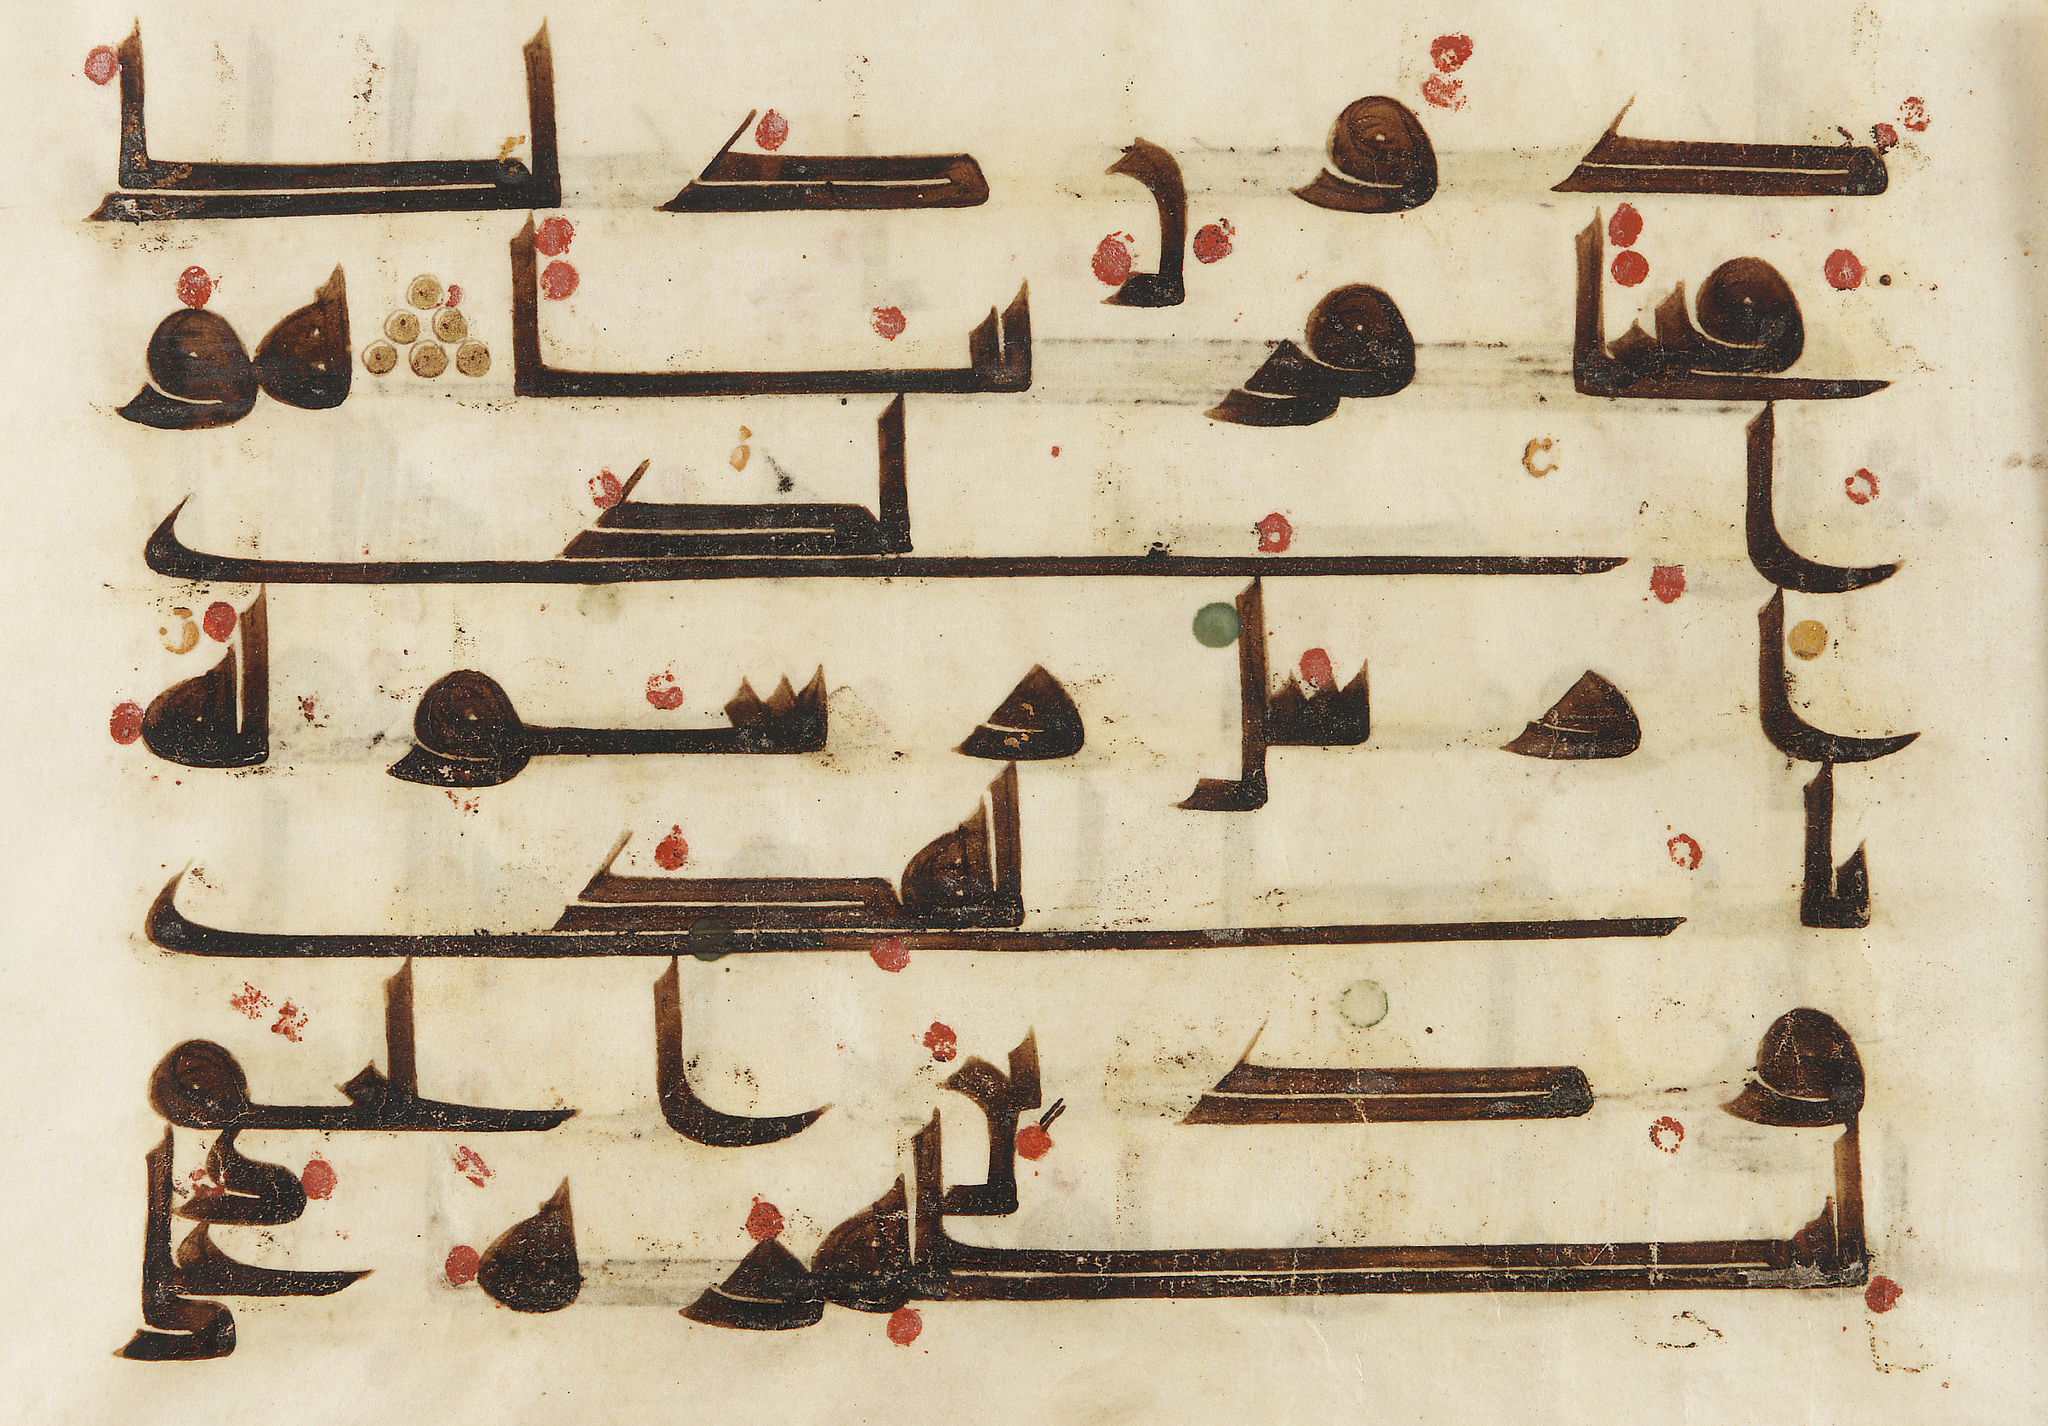 Folio from a Koran. By Unknown in Abbasid dynasty [Public domain], via Wikimedia Commons